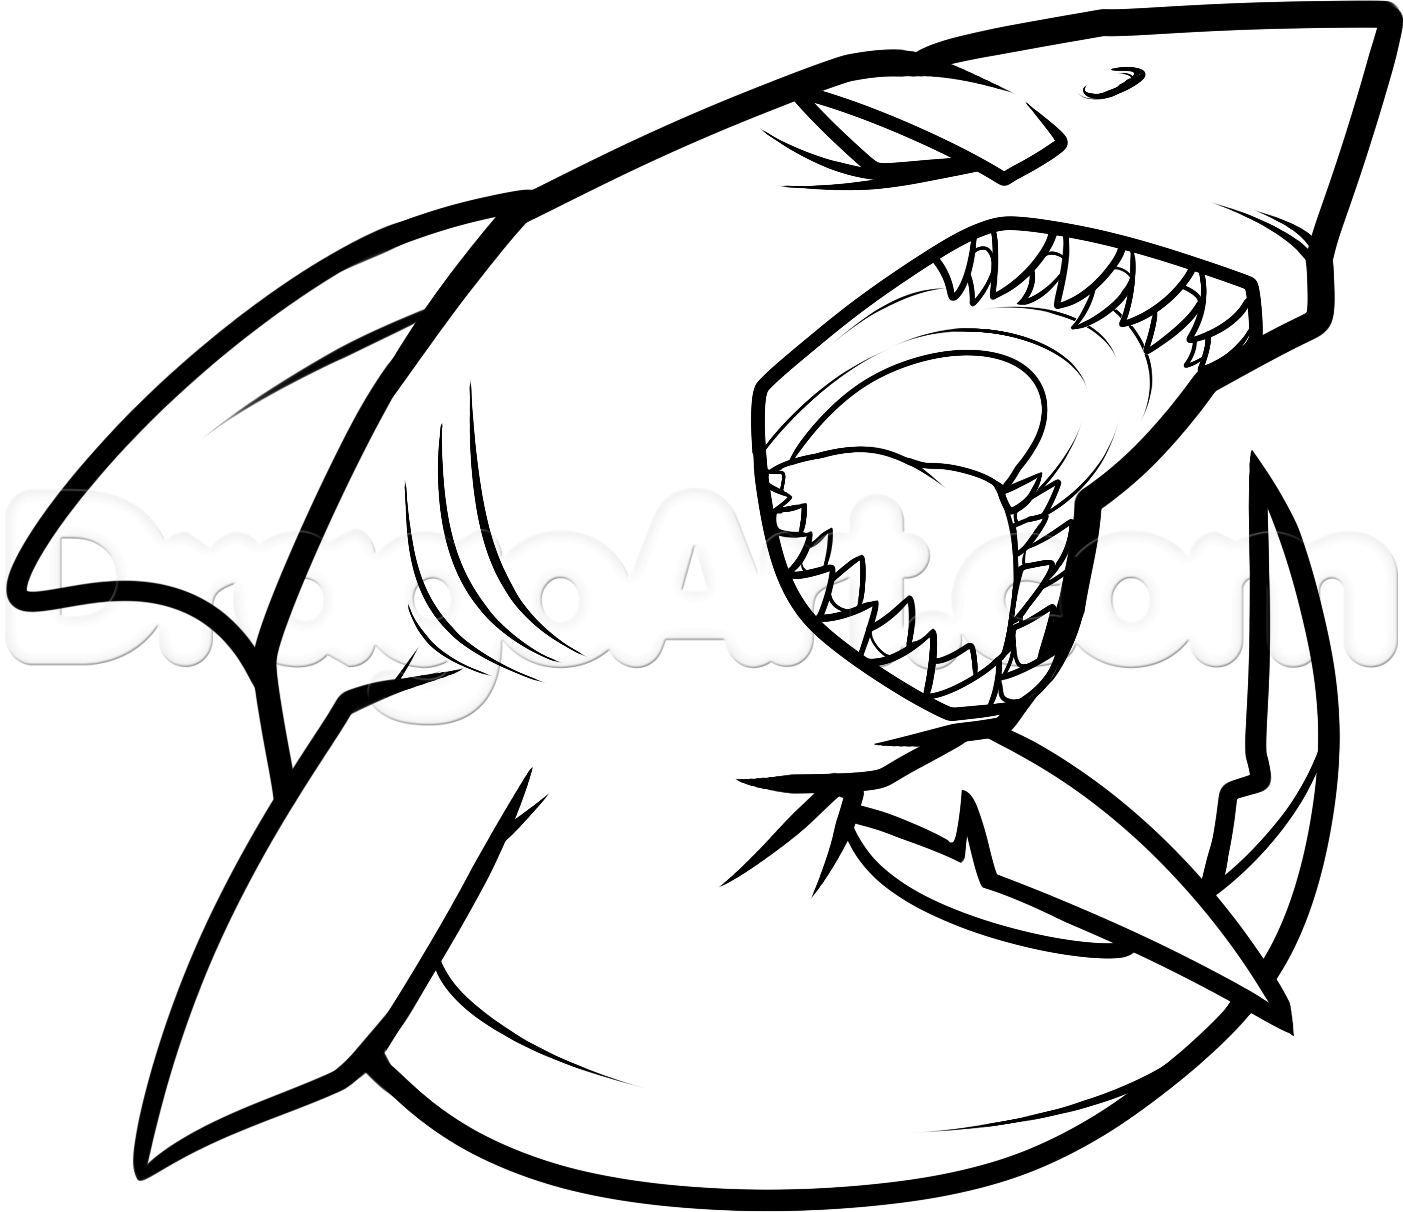 1403x1212 How To Draw A Cool Shark Step 7 Crafty Things